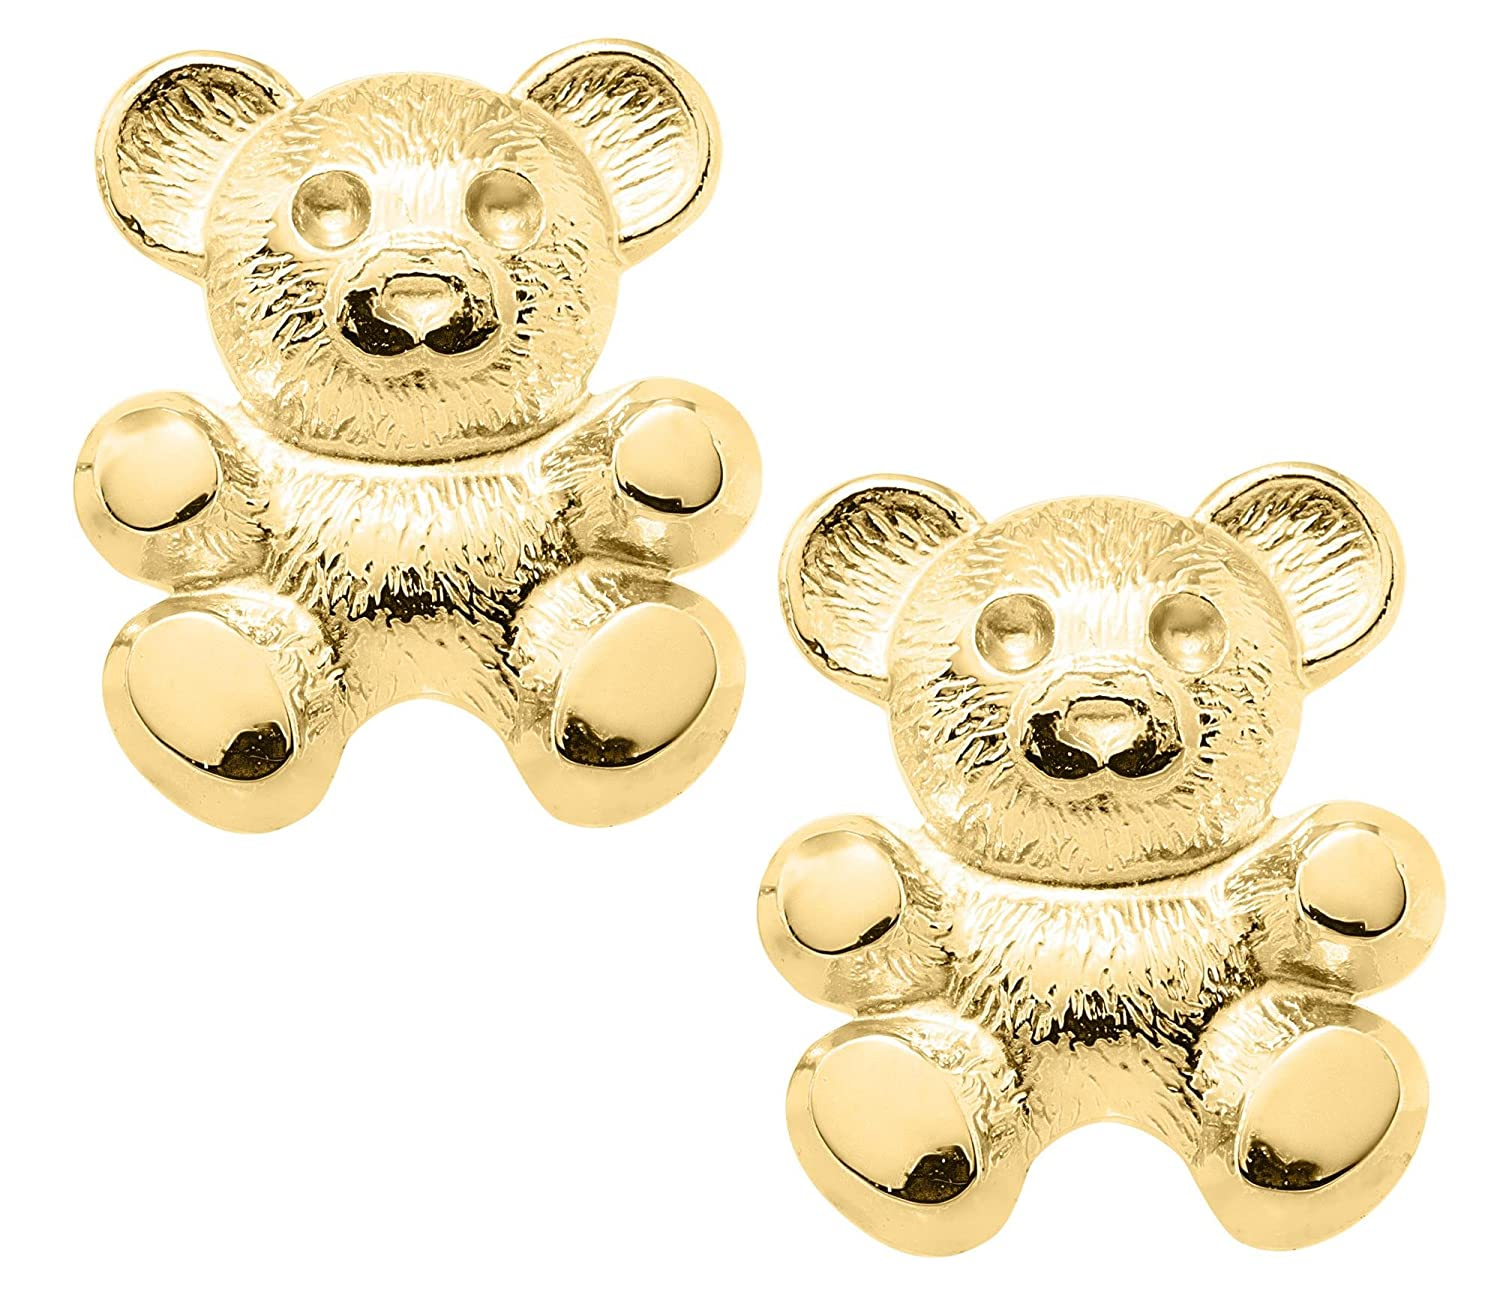 JAMBS JEWELRY 14KT YELLOW GOLD TEDDY BEAR SAFETY EARRINGS FOR CHILDREN